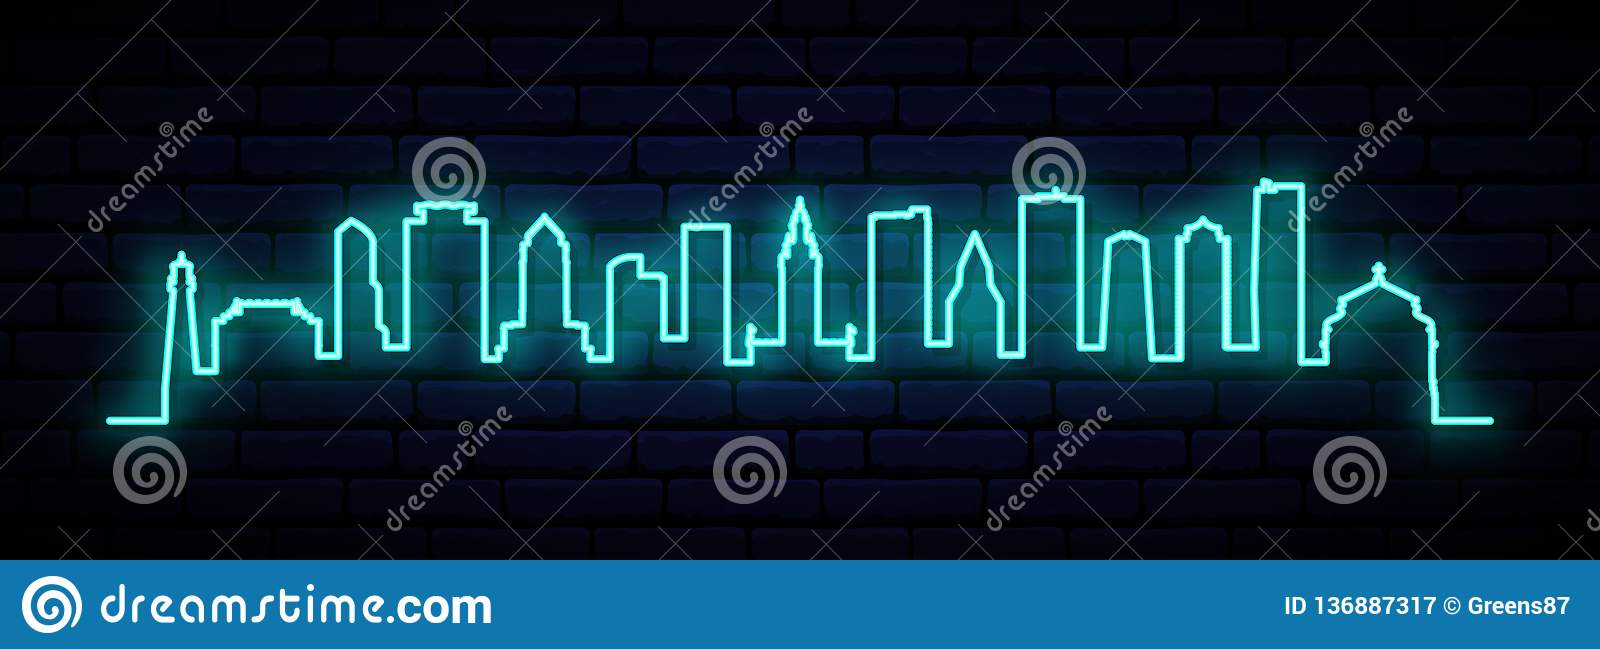 Blue neon skyline of Miami city.